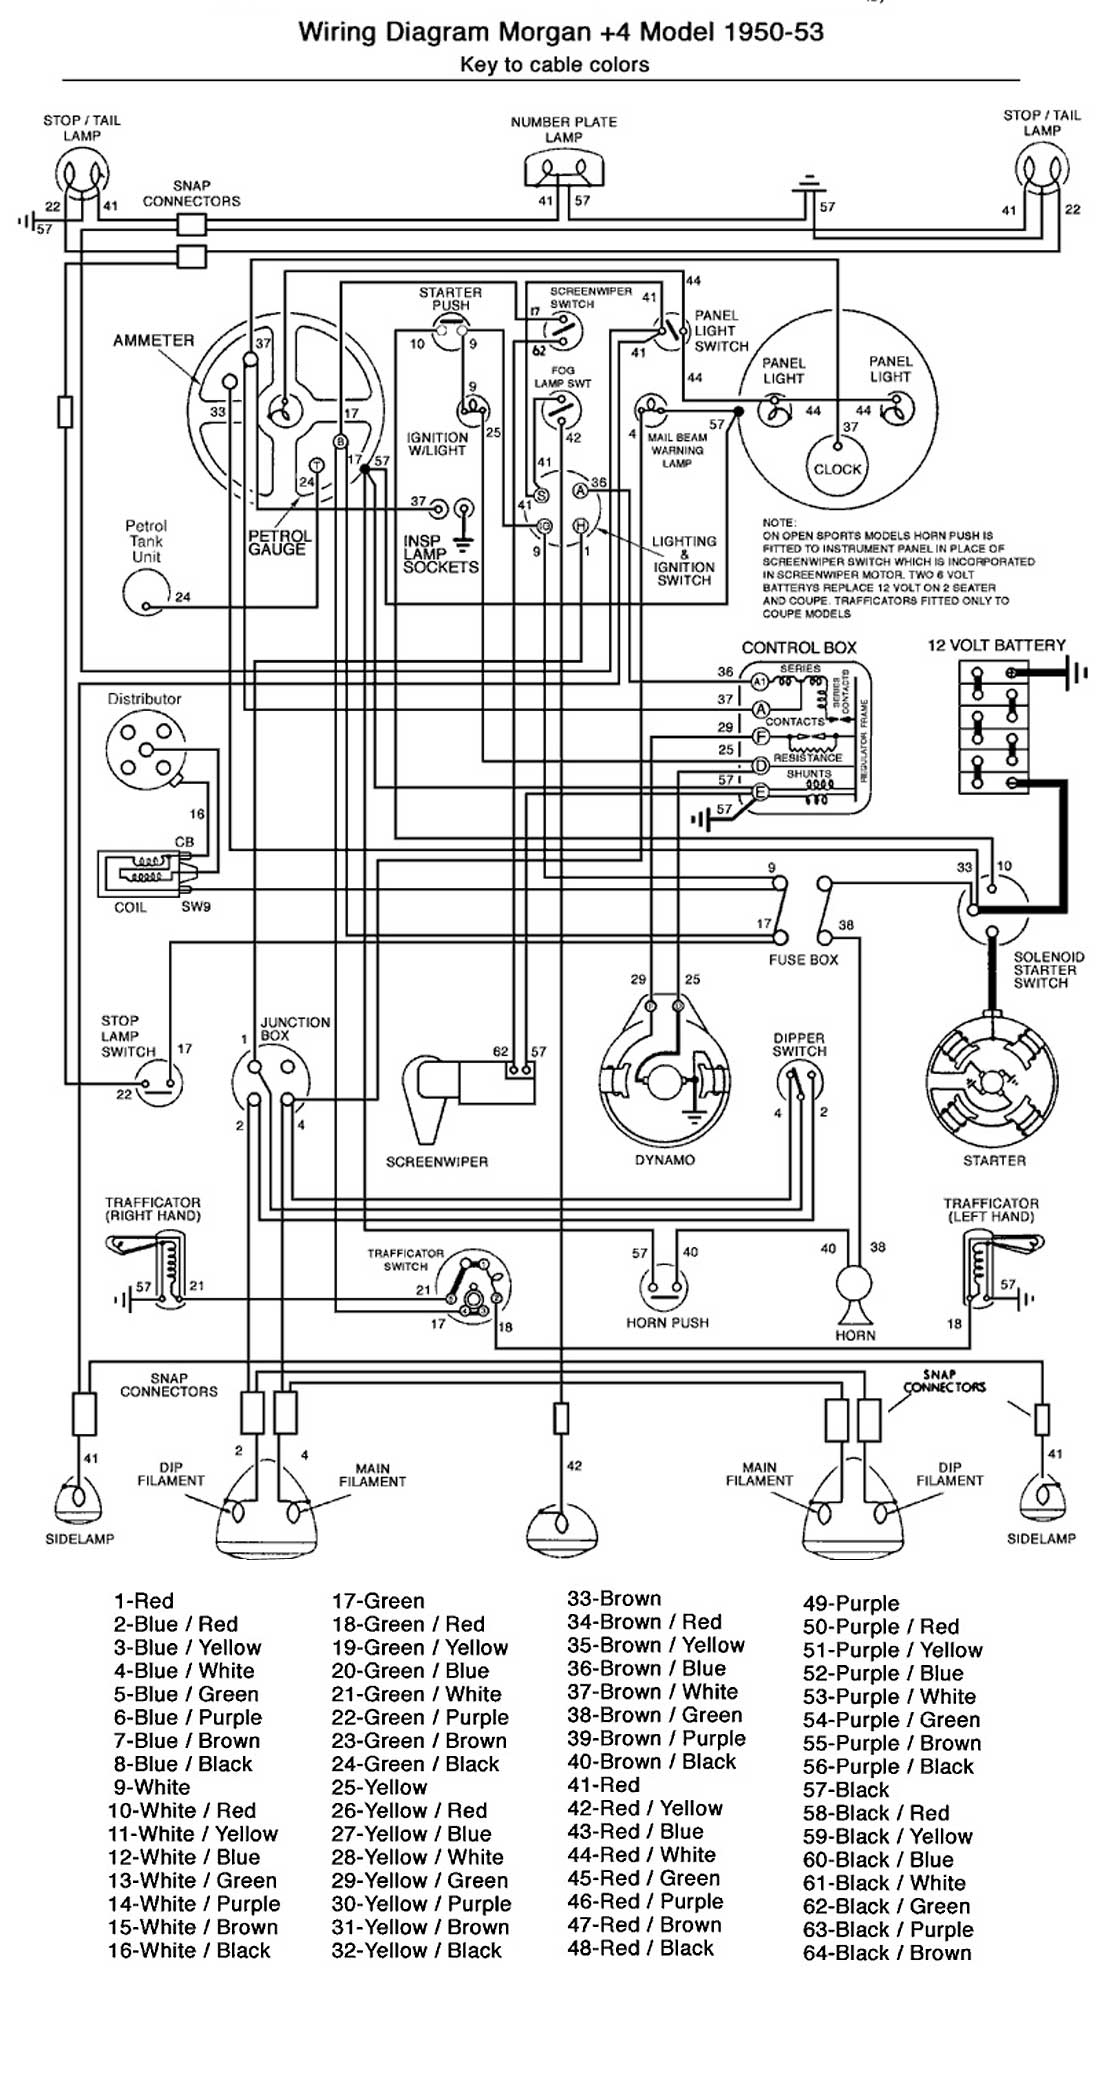 hight resolution of 8 circuit wiring diagram wiring diagram home generac 8 circuit automatic transfer switch wiring diagram 8 circuit wiring diagram